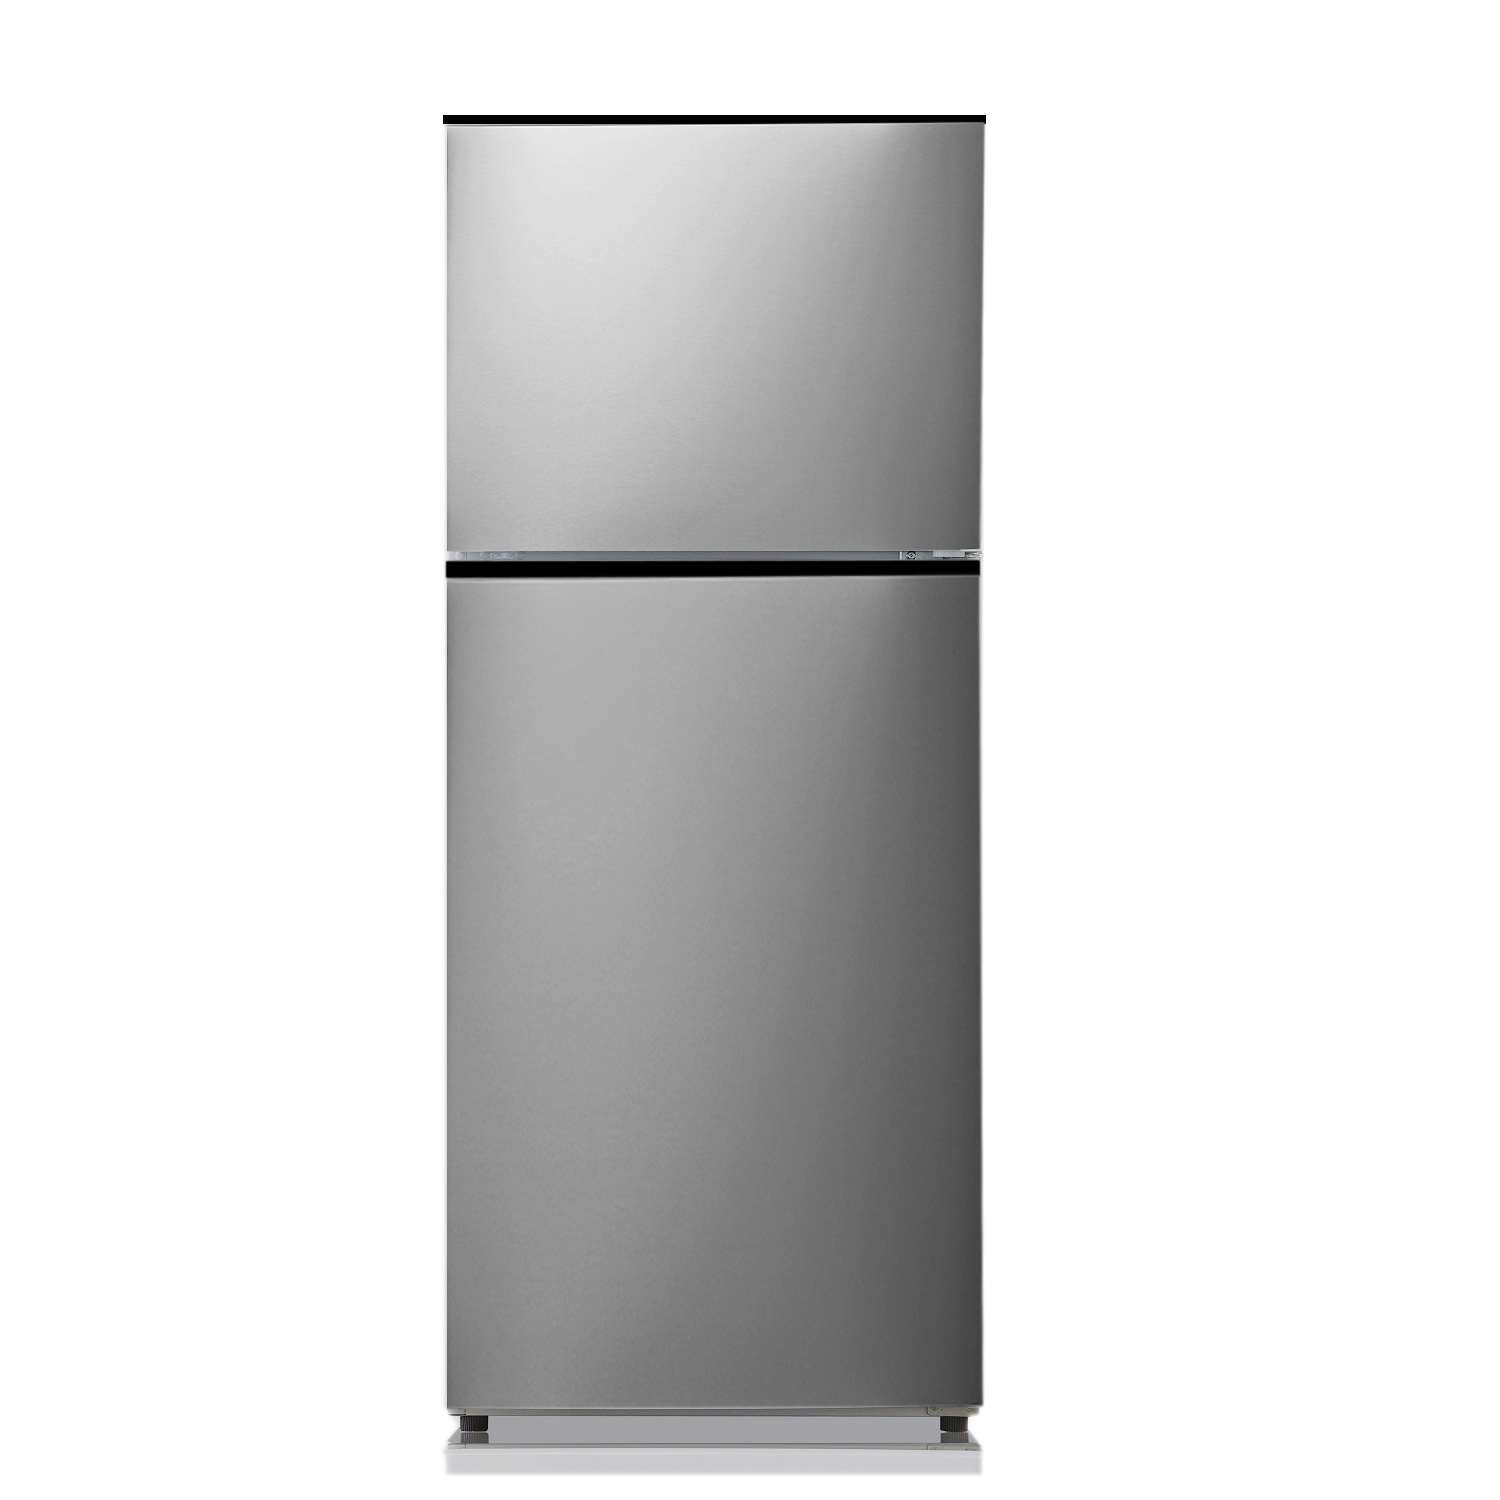 9.9 Cu. Ft. Top Mounted Refrigerator, Stainless Steel